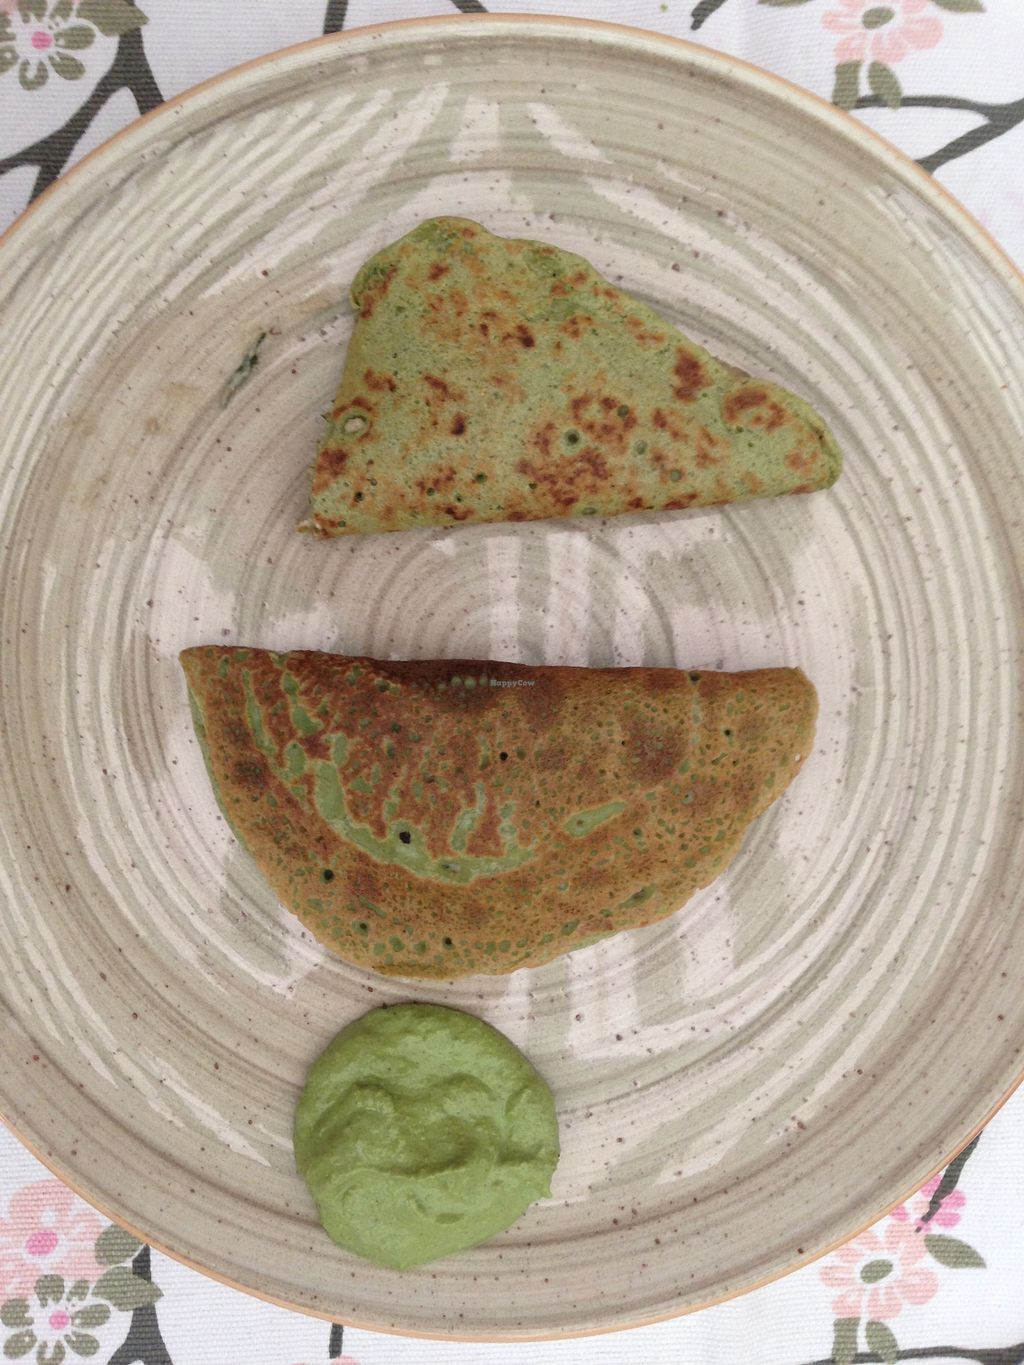 "Photo of PRISiM at PRISiM Healing Institute  by <a href=""/members/profile/sophialeone"">sophialeone</a> <br/>Probably the best thing I have eaten in India. Creamy mushroom crepes.  <br/> January 5, 2018  - <a href='/contact/abuse/image/95011/343132'>Report</a>"